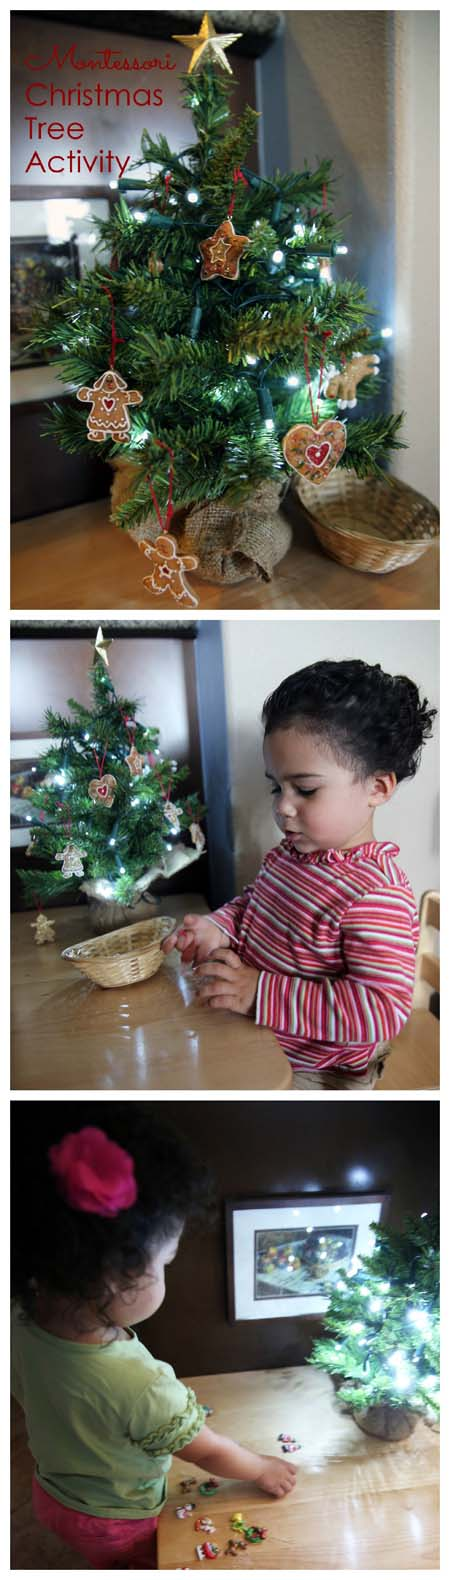 Montessori Christmas Tree Activities Pinterest